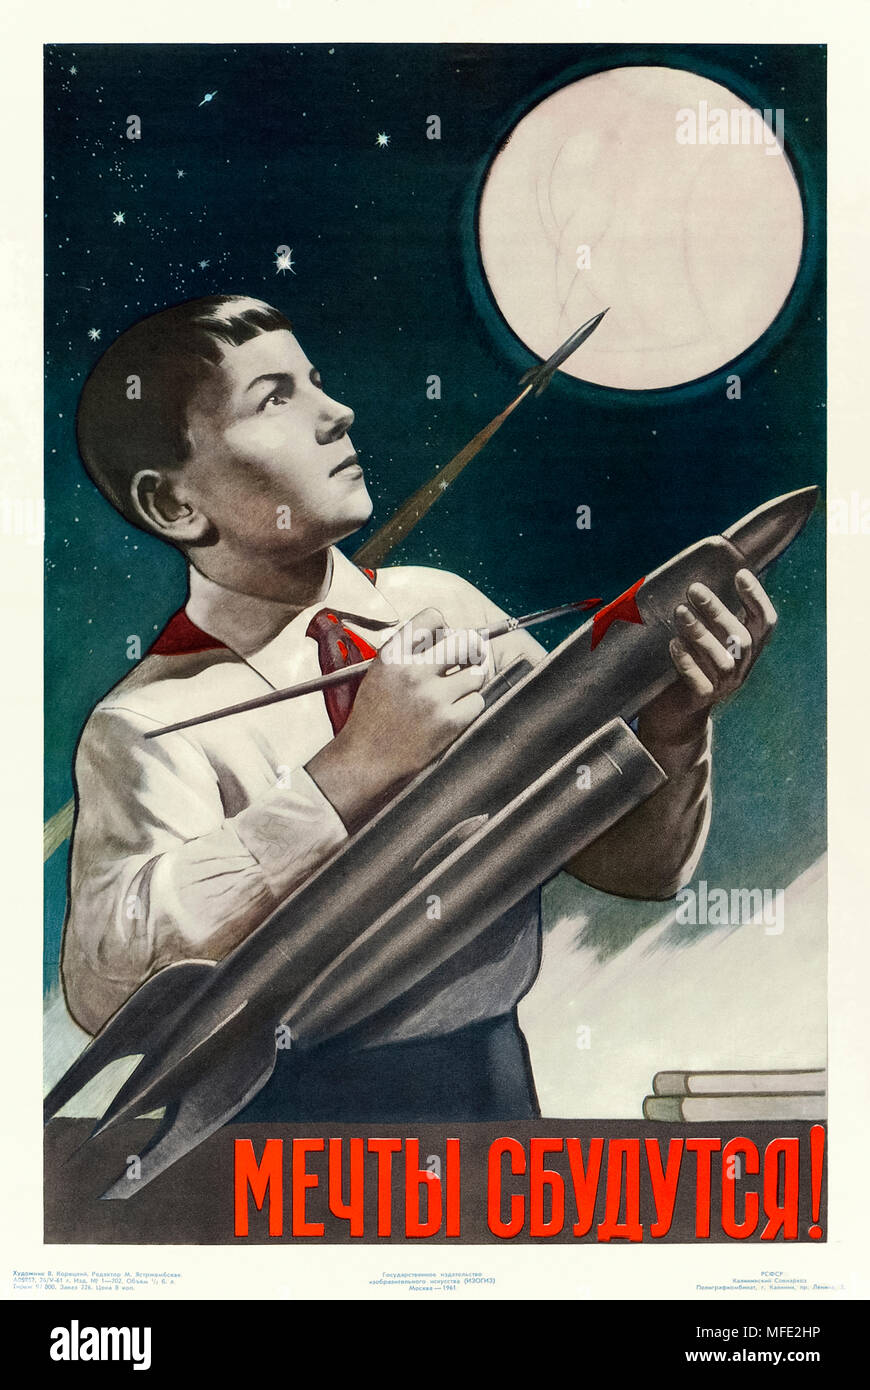 'Мечты сбываются!' (Dreams Come True!) 1961 Soviet Union propaganda poster showing a boy in the uniform of Vladimir Lenin All-Union Pioneer Organization painting the Red Star symbol of communism on his toy rocket whilst observing a space rocker, probably Venera 1 on its way to Venus, passing the moon. See more information below. - Stock Image